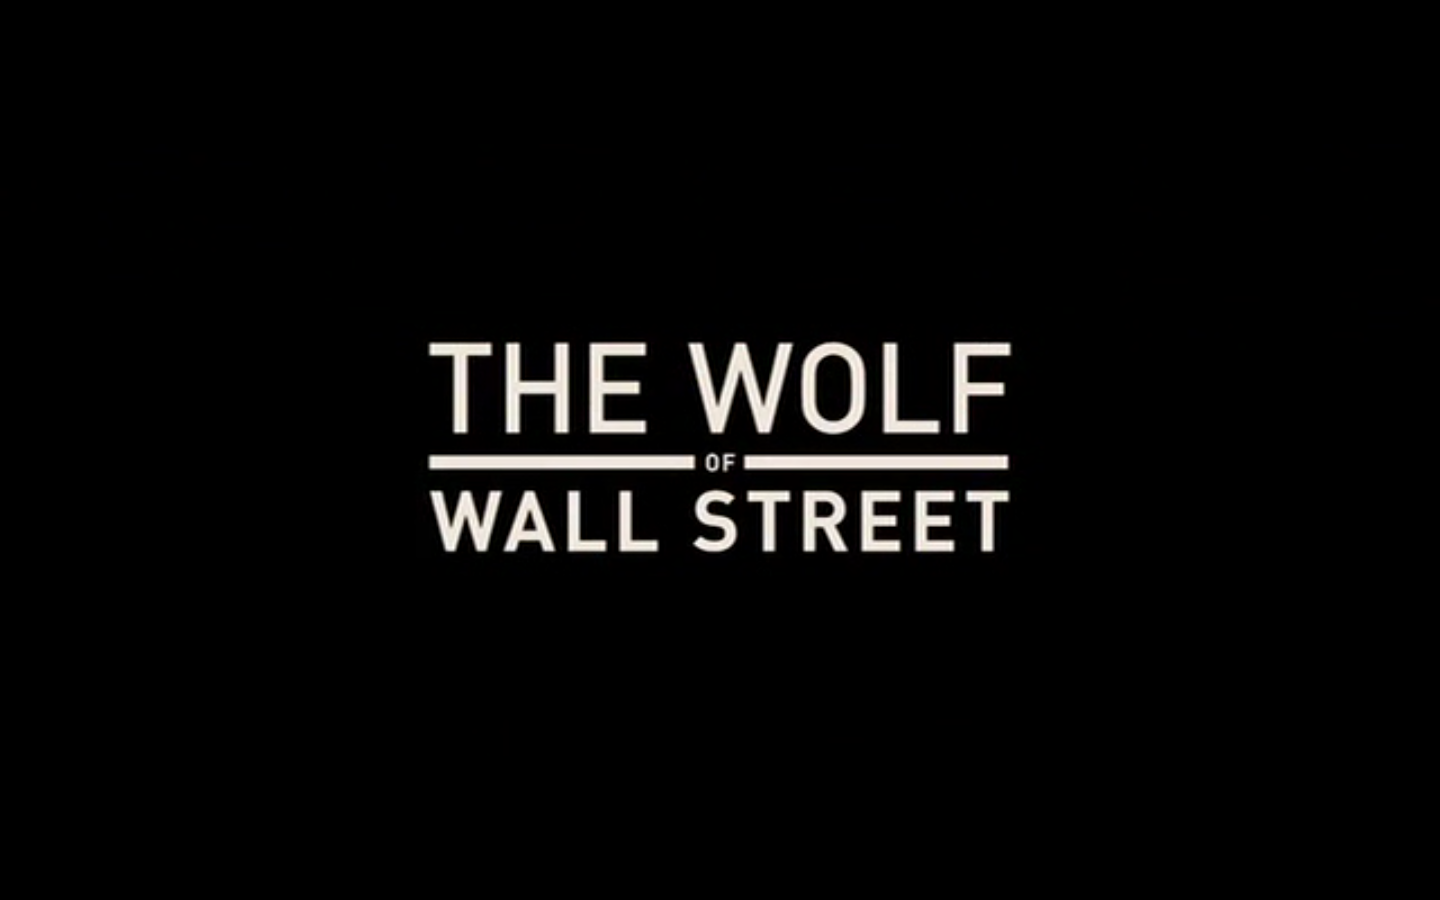 ethical issues in the movie wall street Academic economists are moving closer to adopting a code of ethics in response to criticism that ethical the wall street stung by 'inside job,' economists.